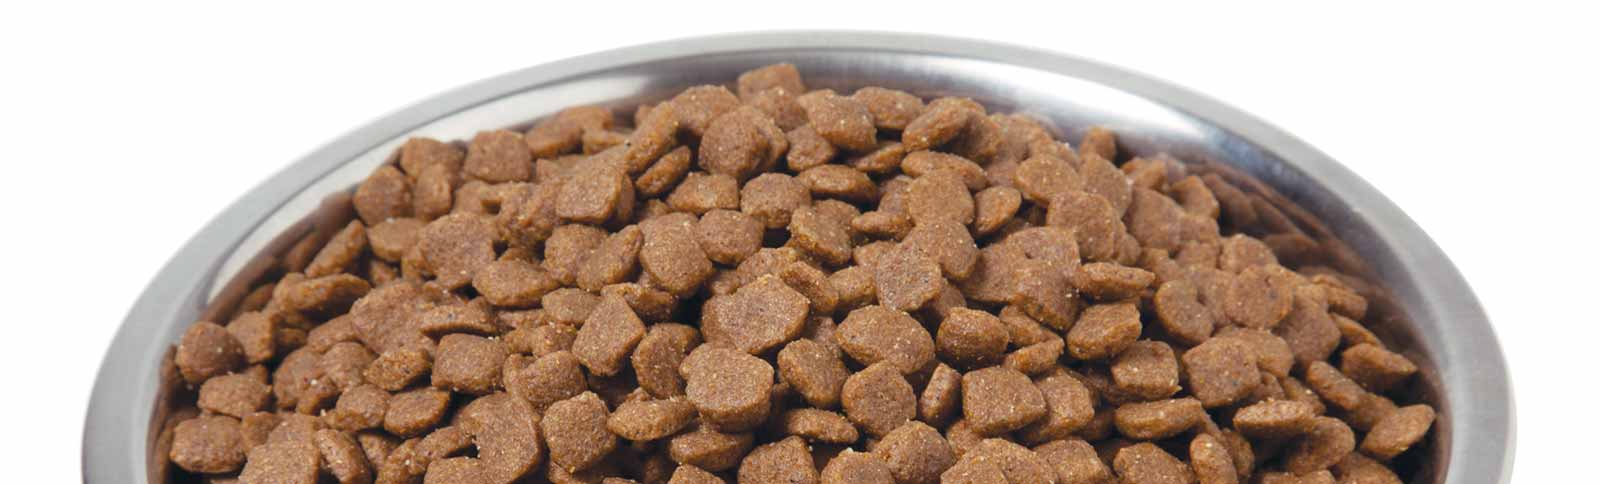 Recommended Dog Food Brands